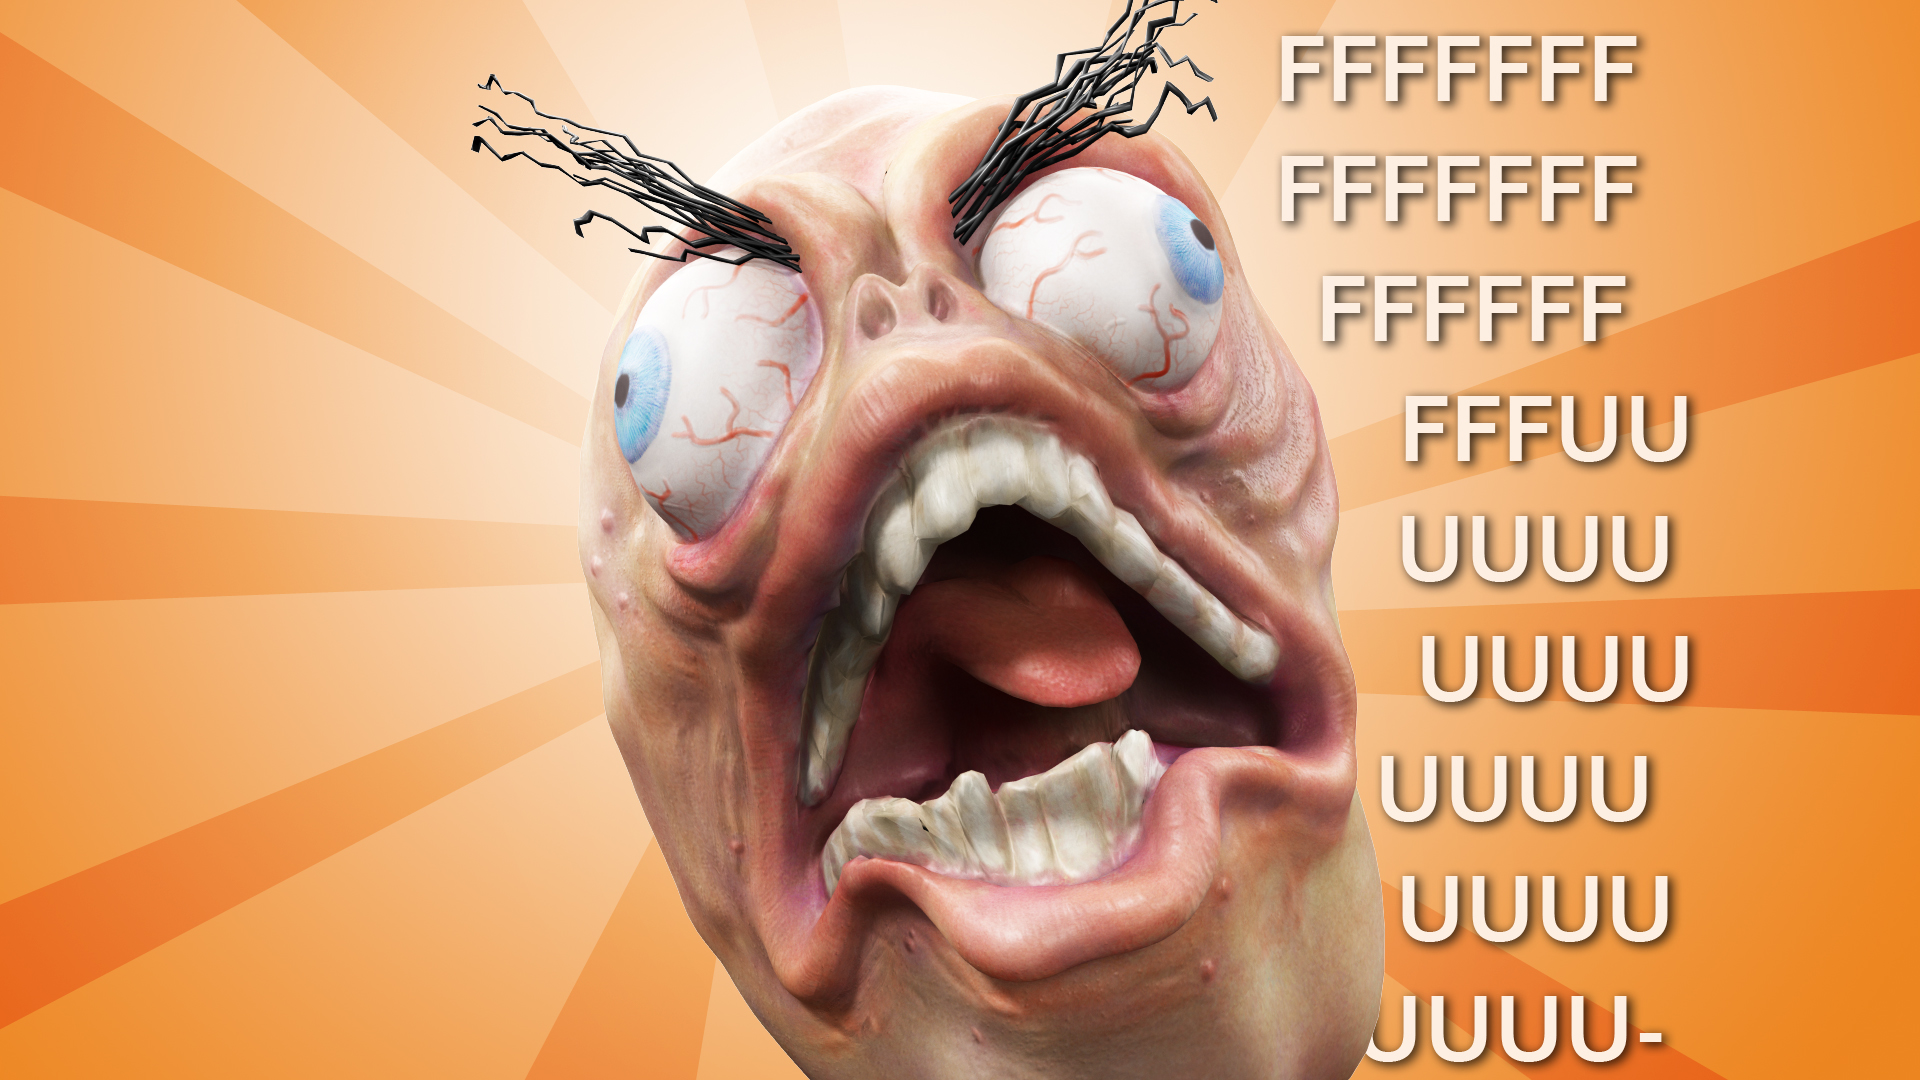 Funny Meme Phone Wallpapers : Rage wallpaper full hd wallpaper and background image 1920x1080